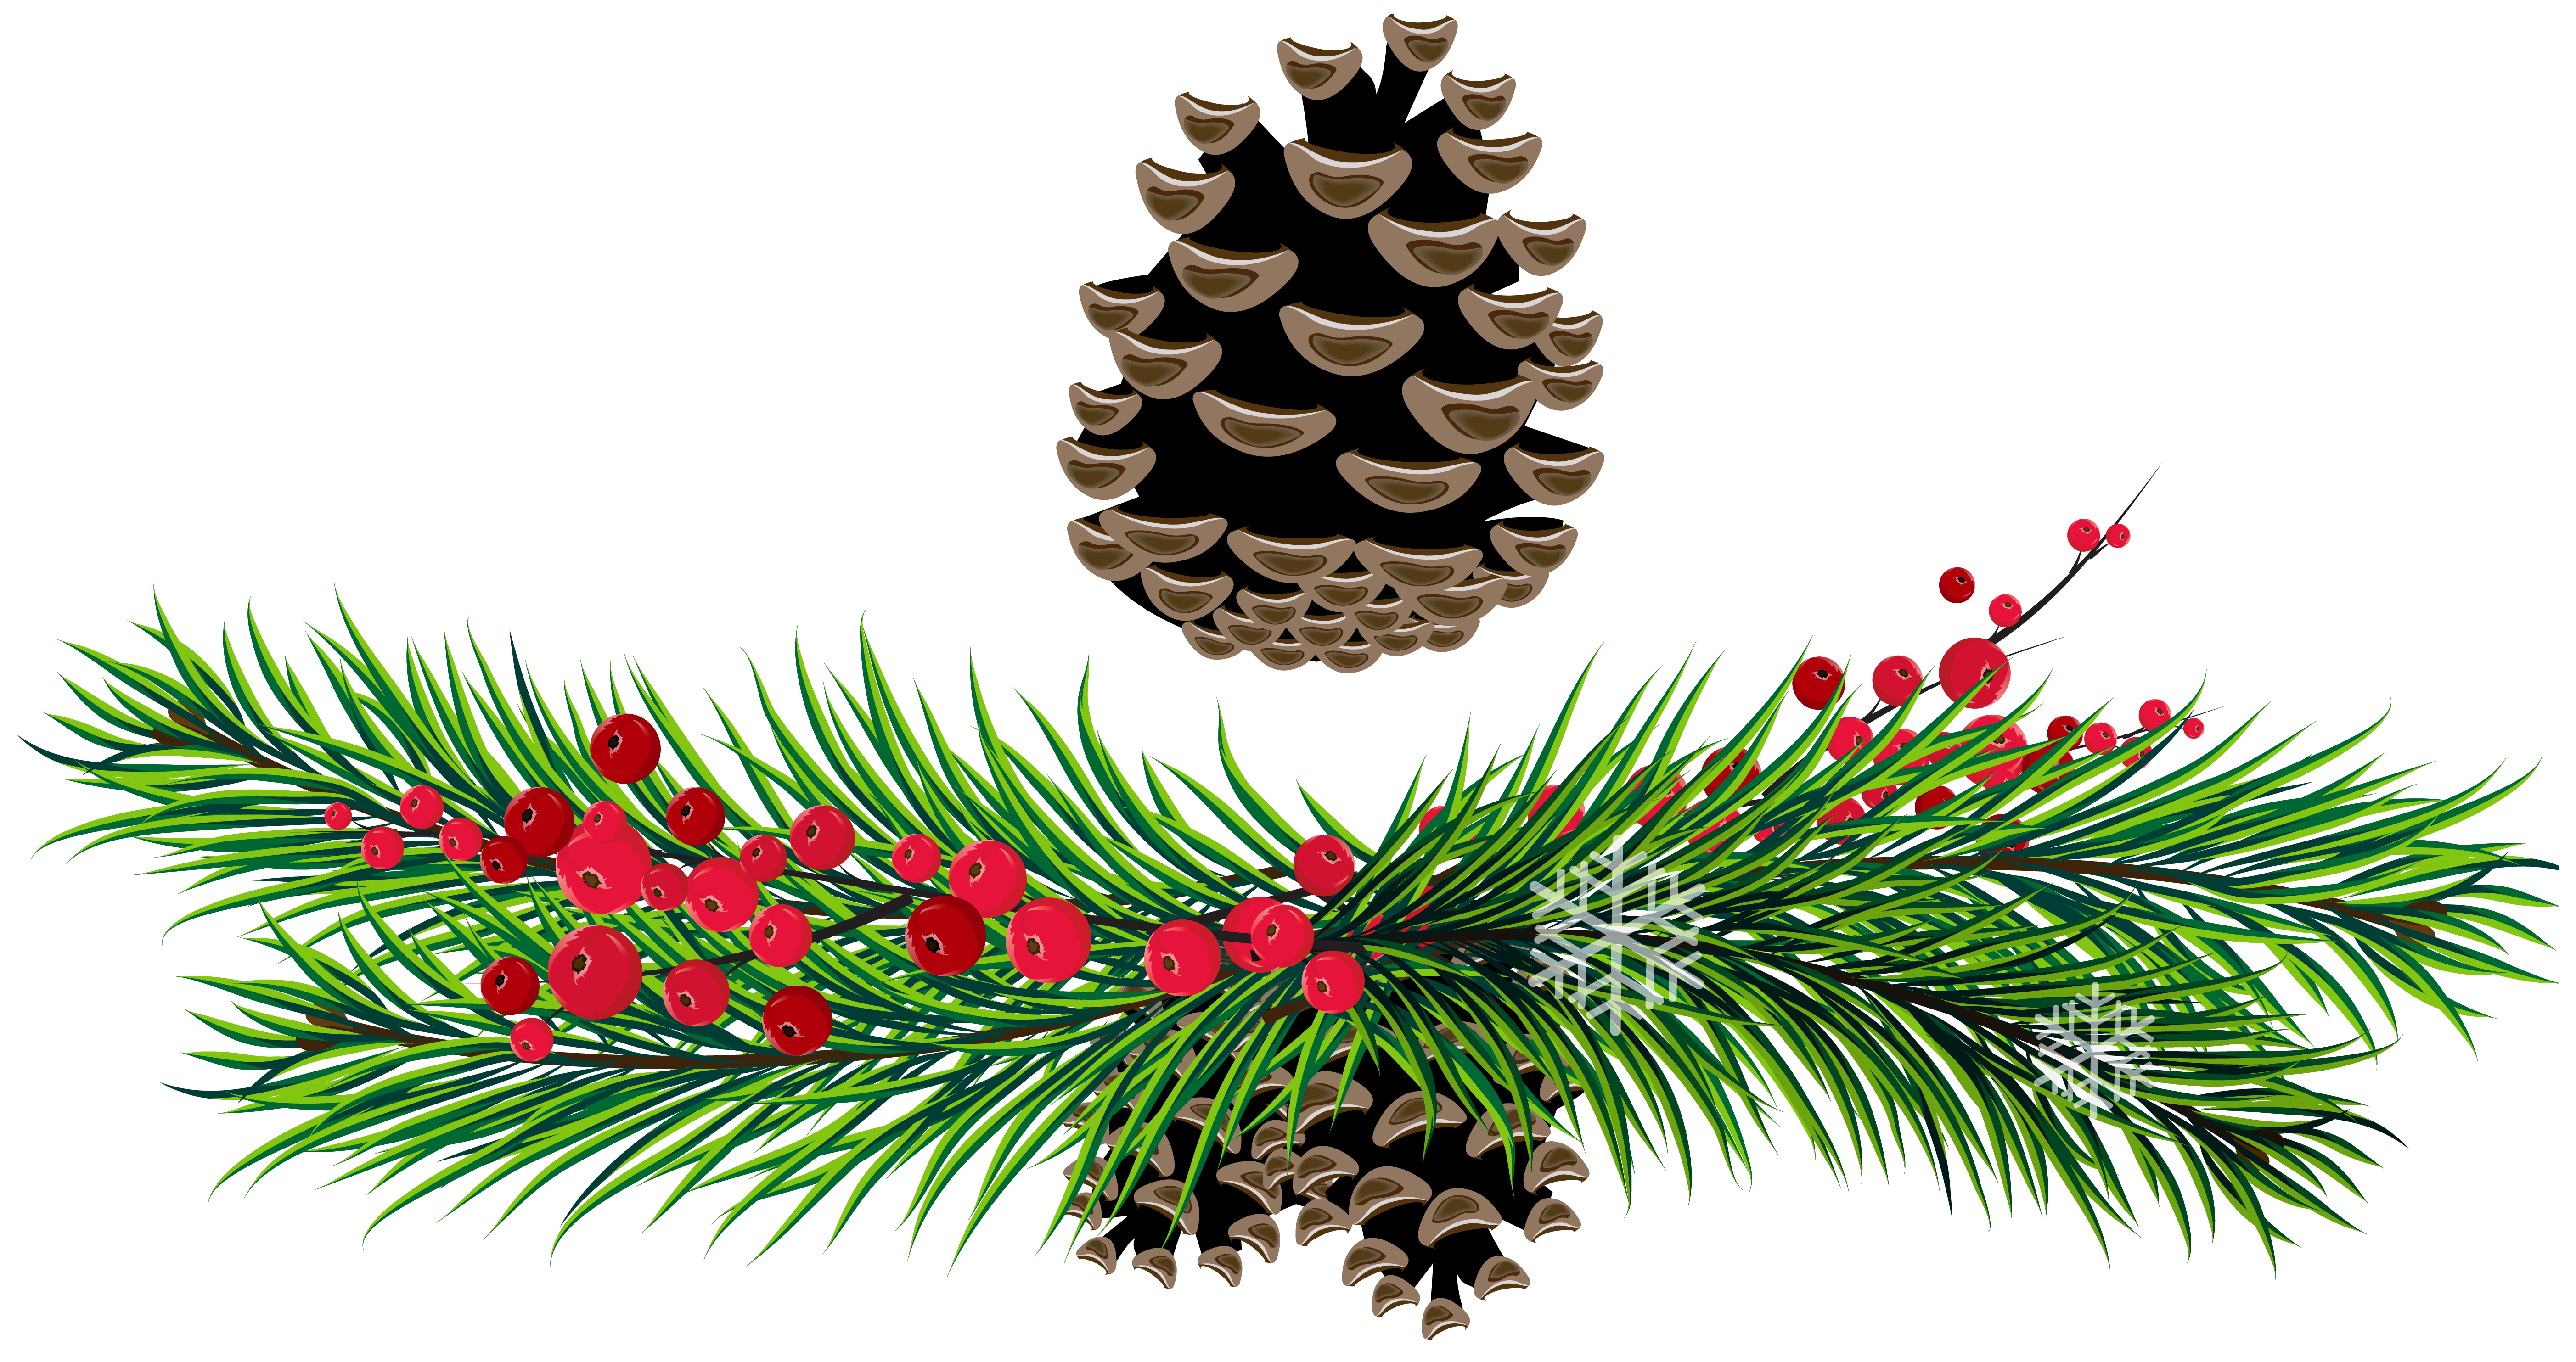 Garland clipart bough. Tree branch png free